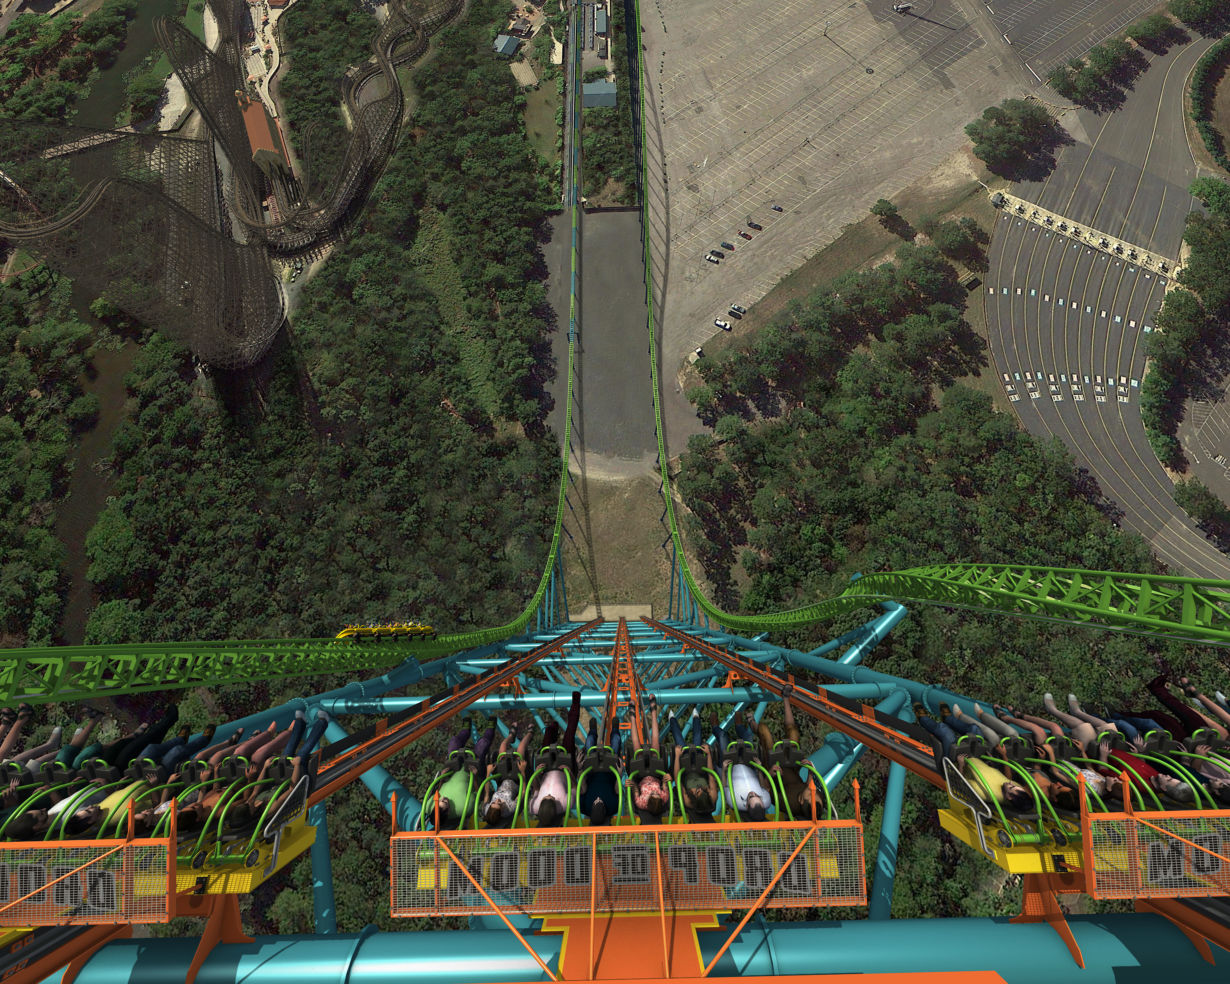 Zumanjaro: Drop of Doom at Six Flags Great Adventure